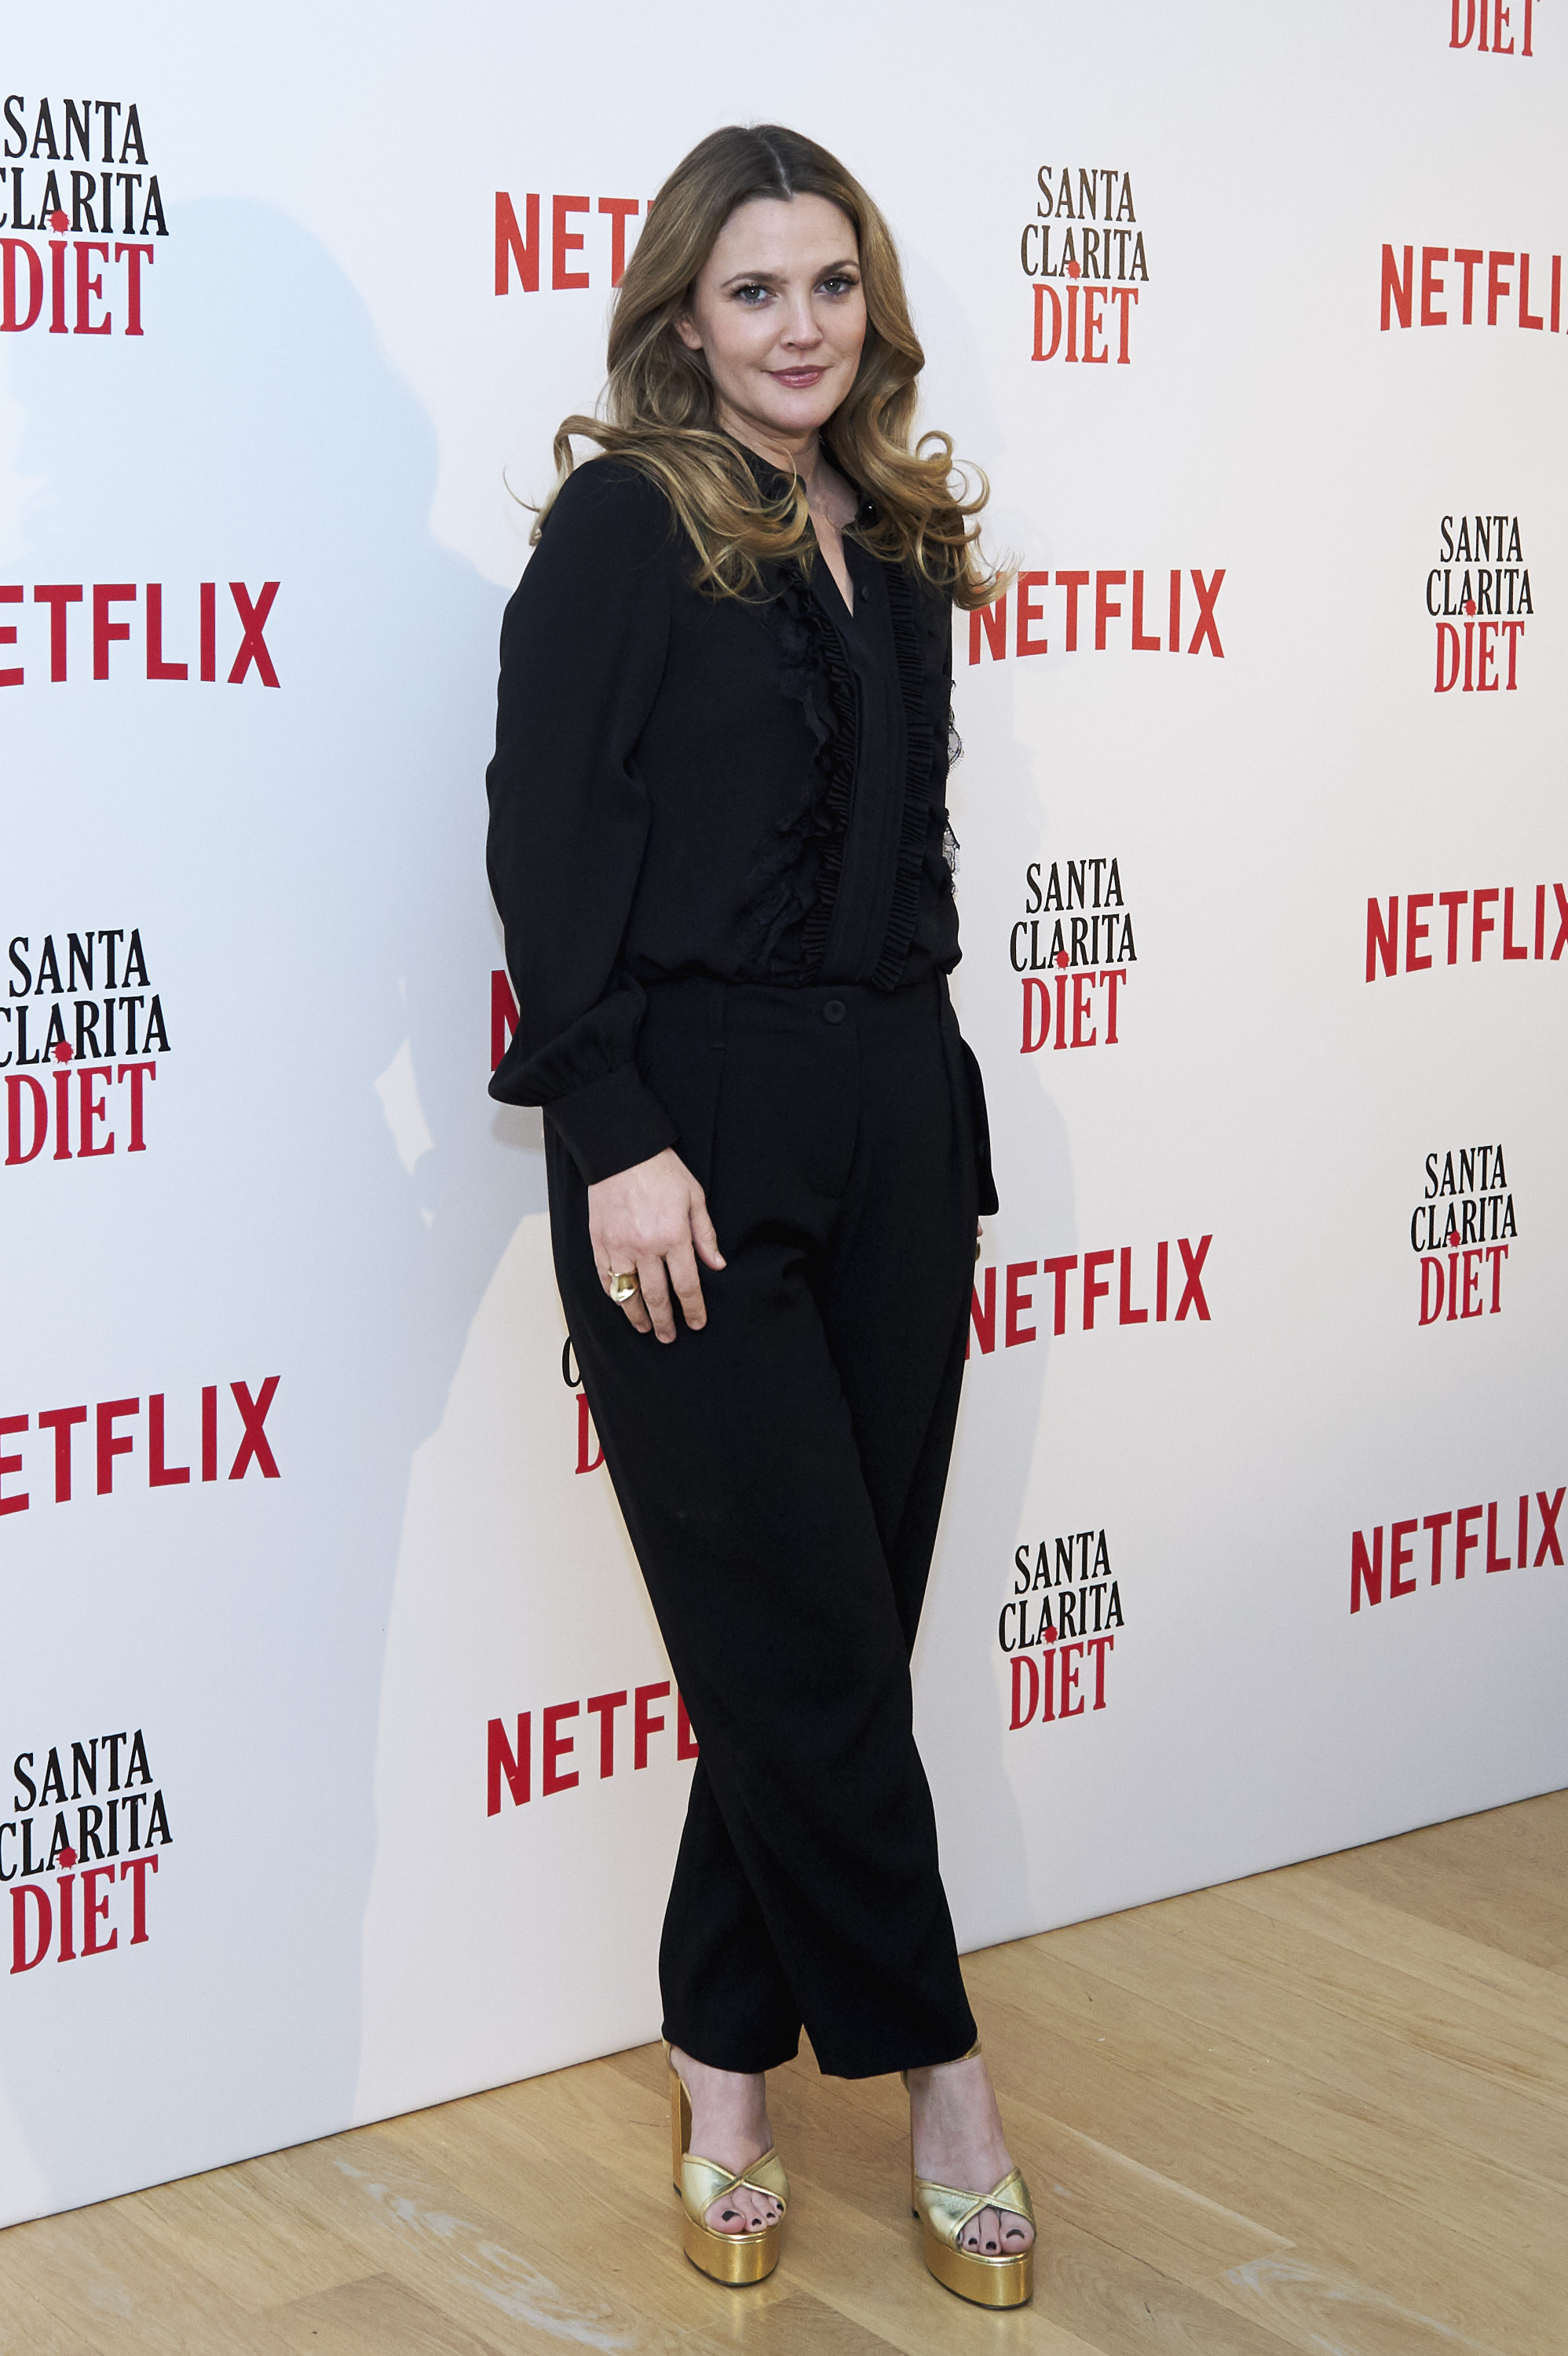 Drew-Barrymore-attends-Santa-Clarita-Diet-photocall-at-the-Netflix-office-on-January-19-2017-in-Madrid